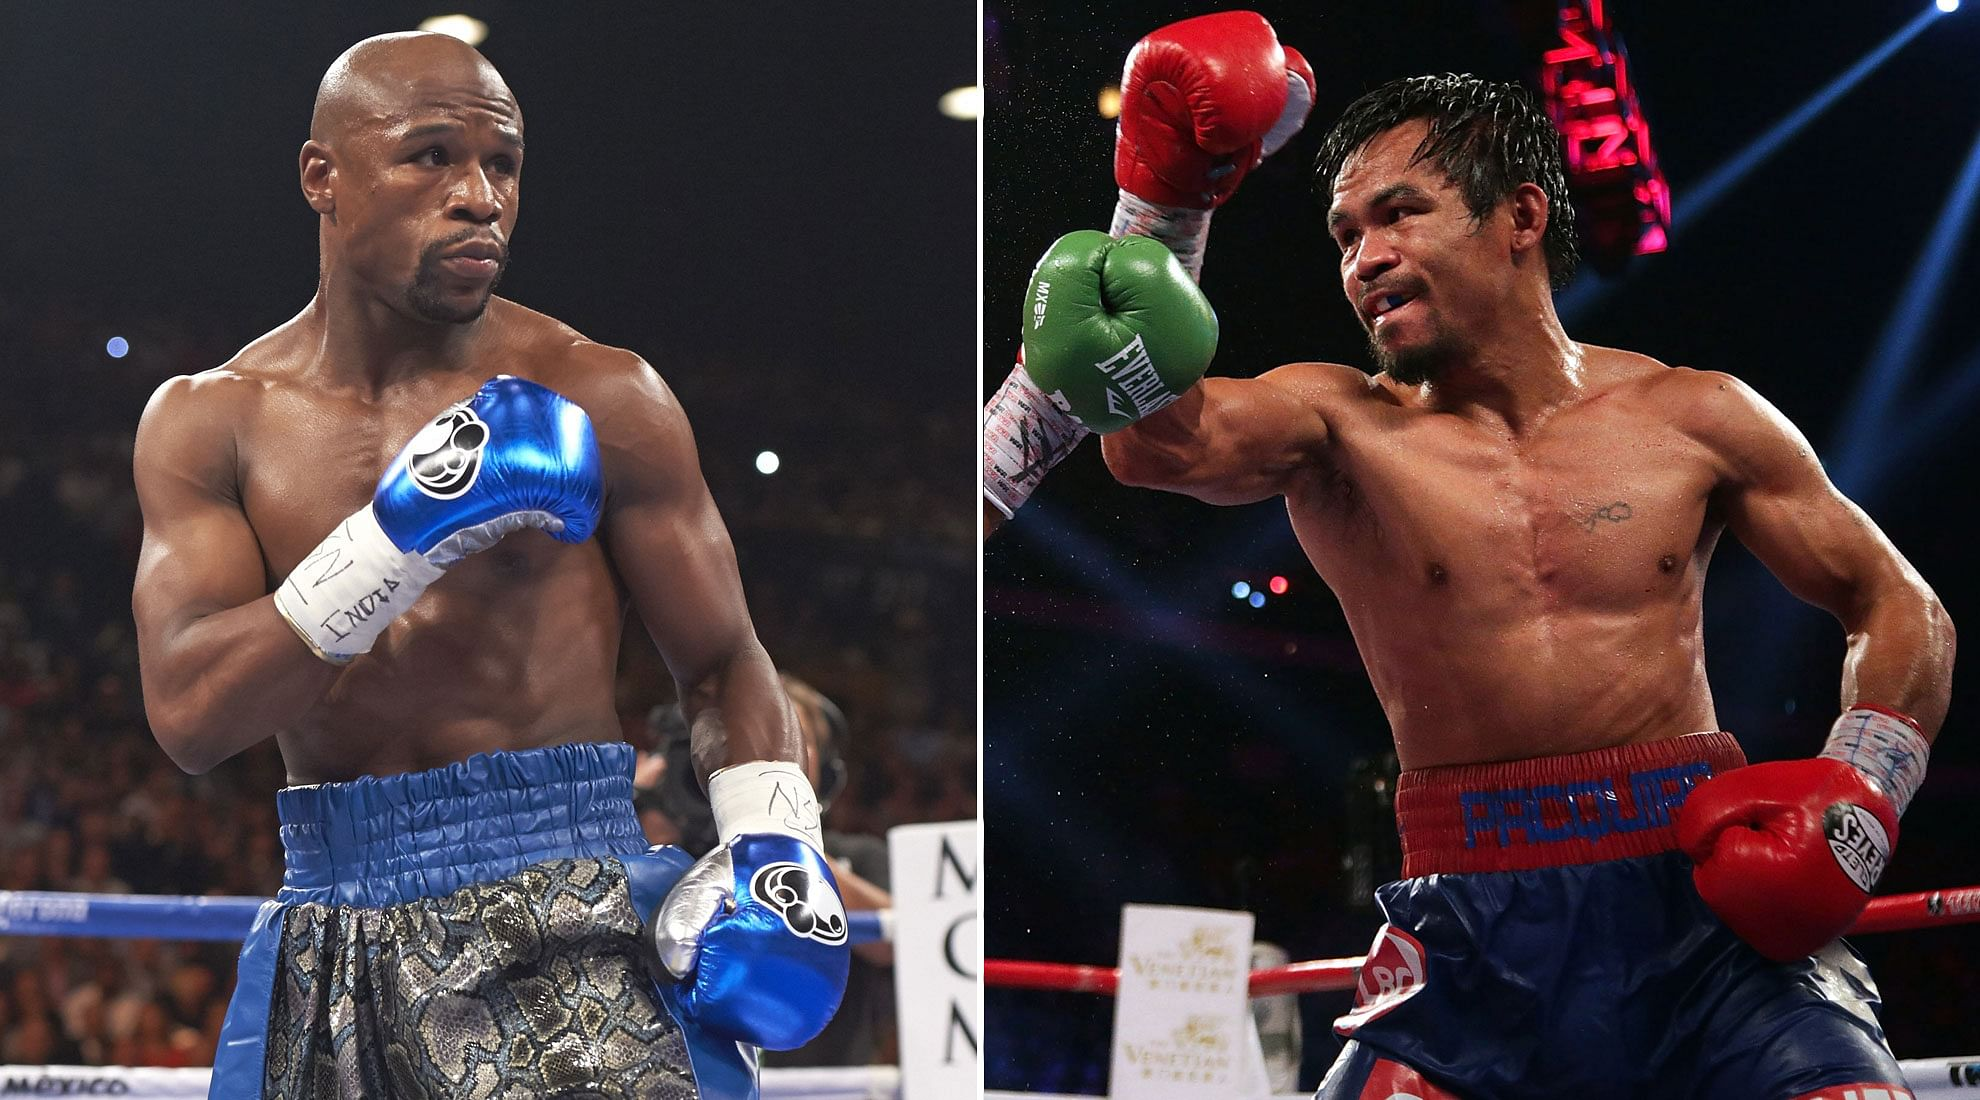 Floyd Mayfeather and Manny Pacquiao agree to a £160m fight according to reports